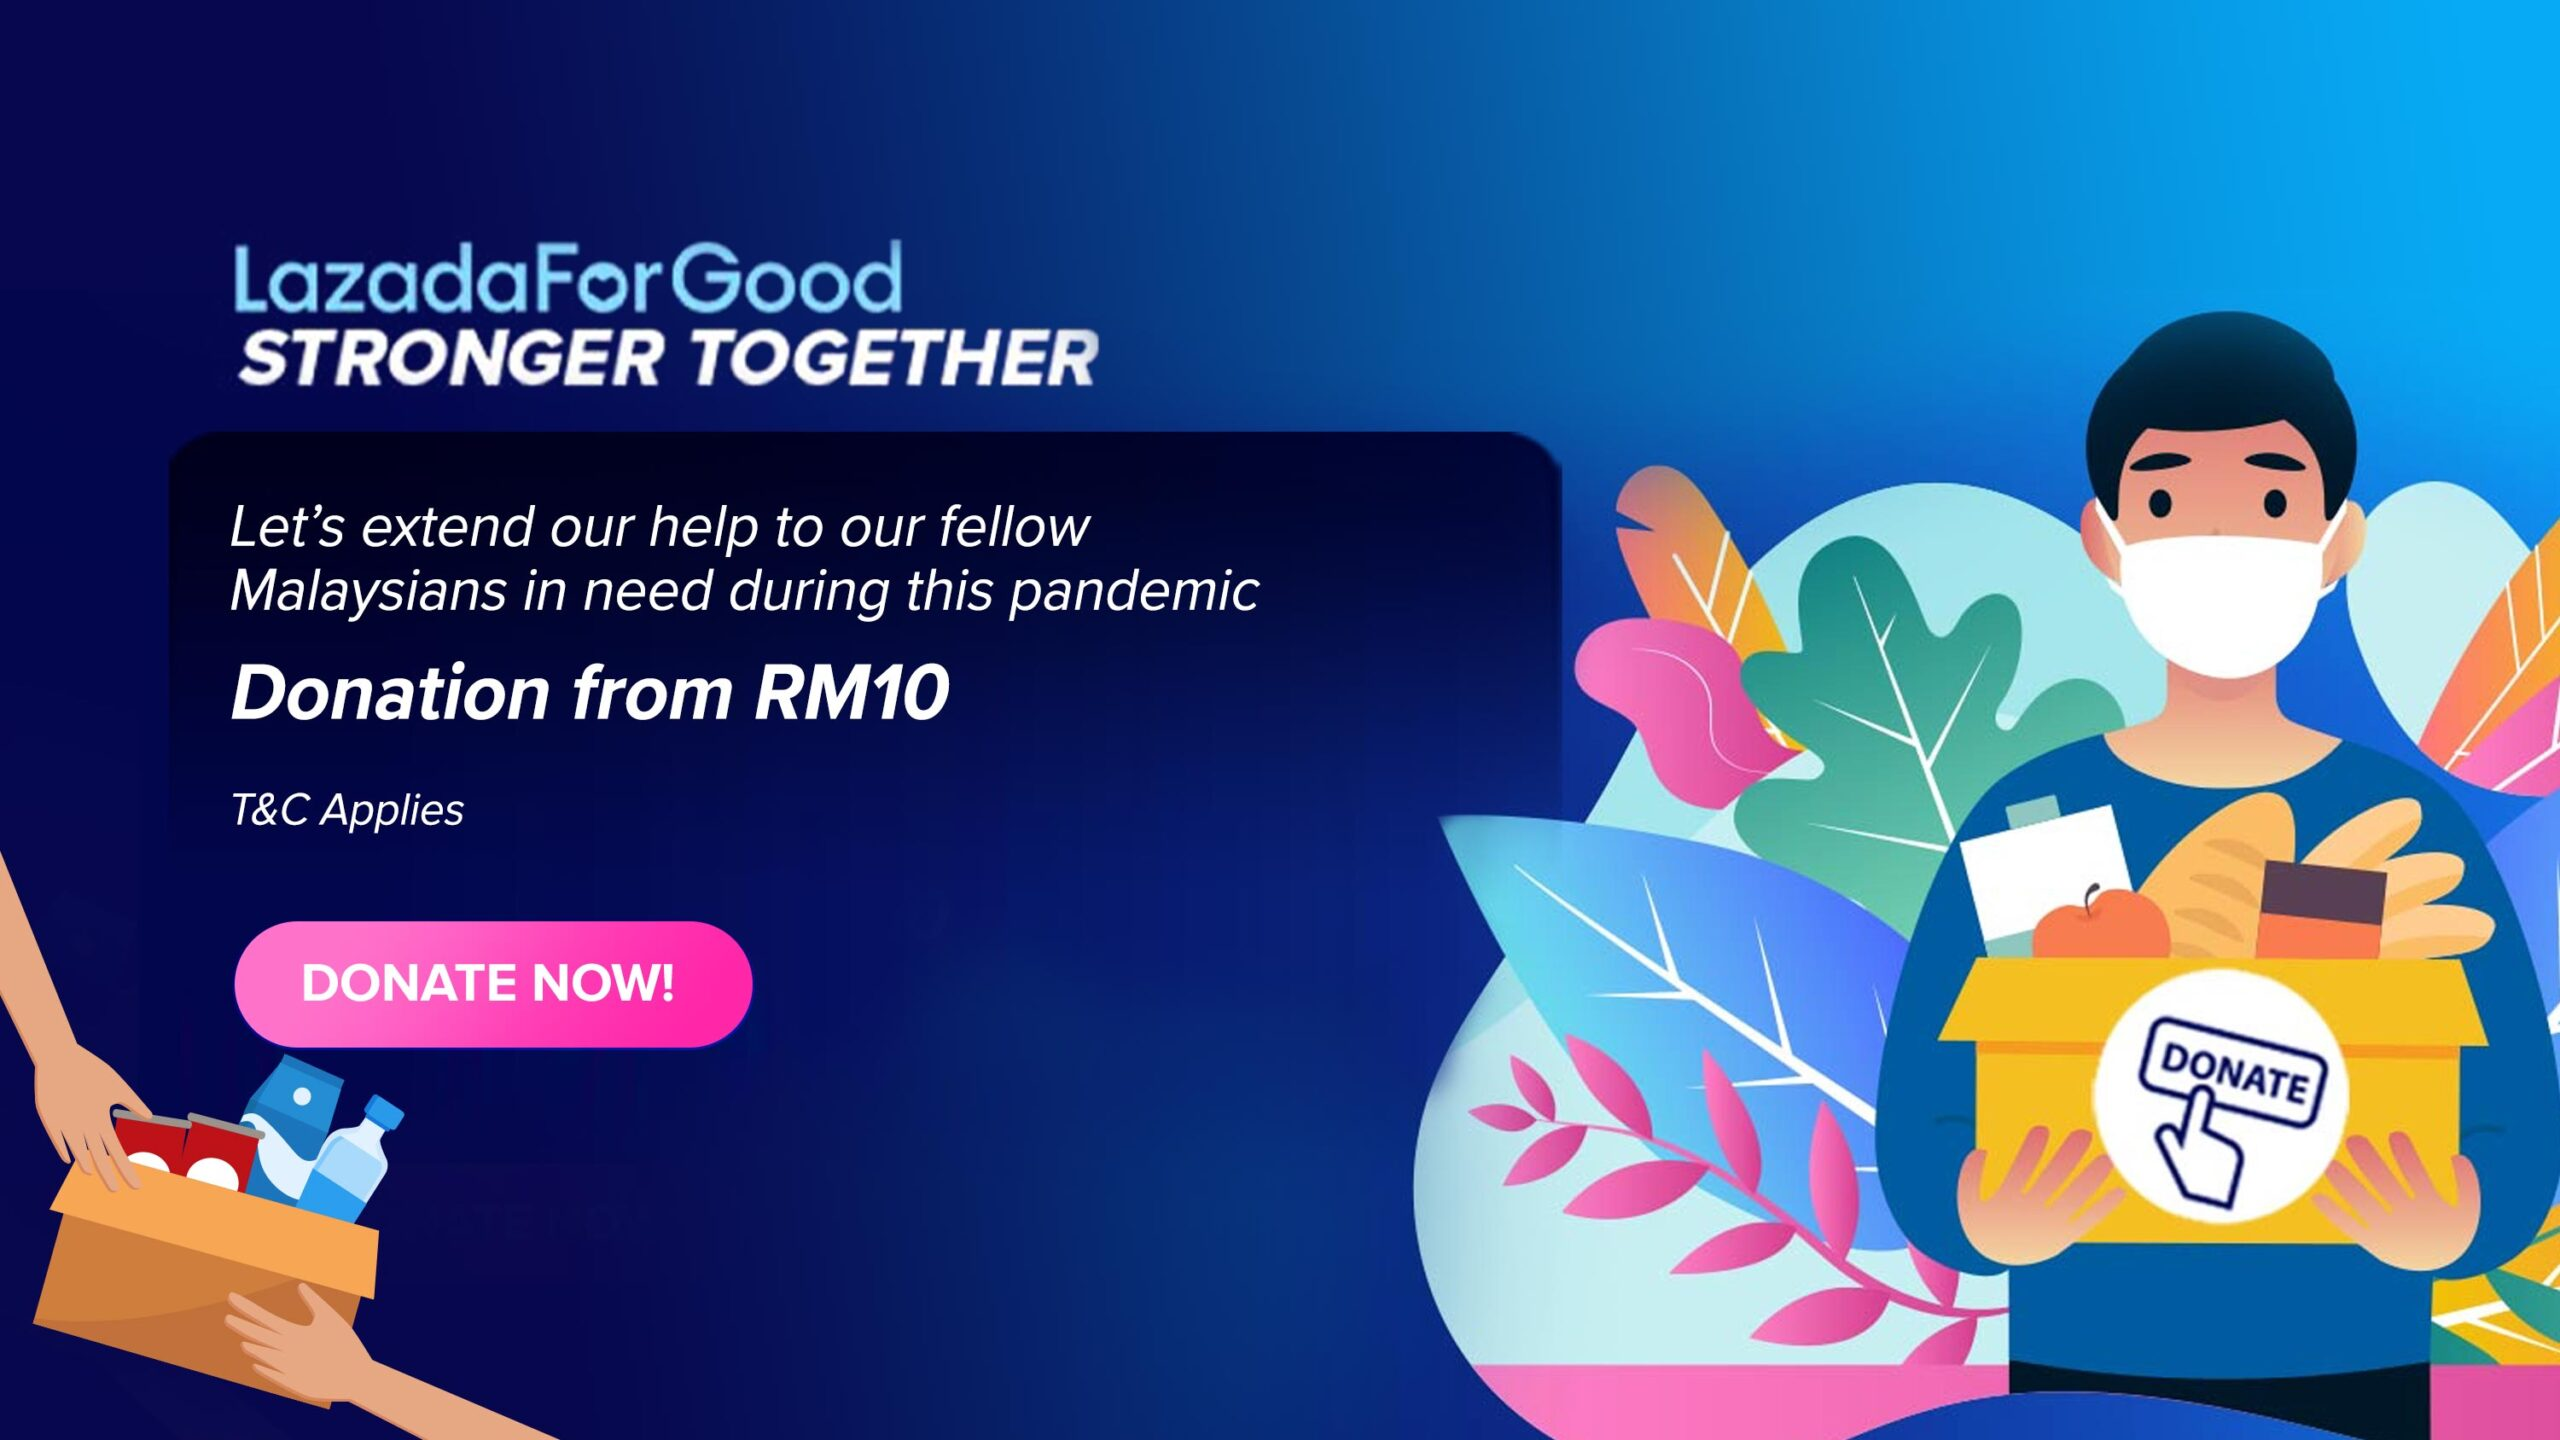 LazadaForGood: Lazada Steps Up Support for Frontliners and Malaysians In Need 23